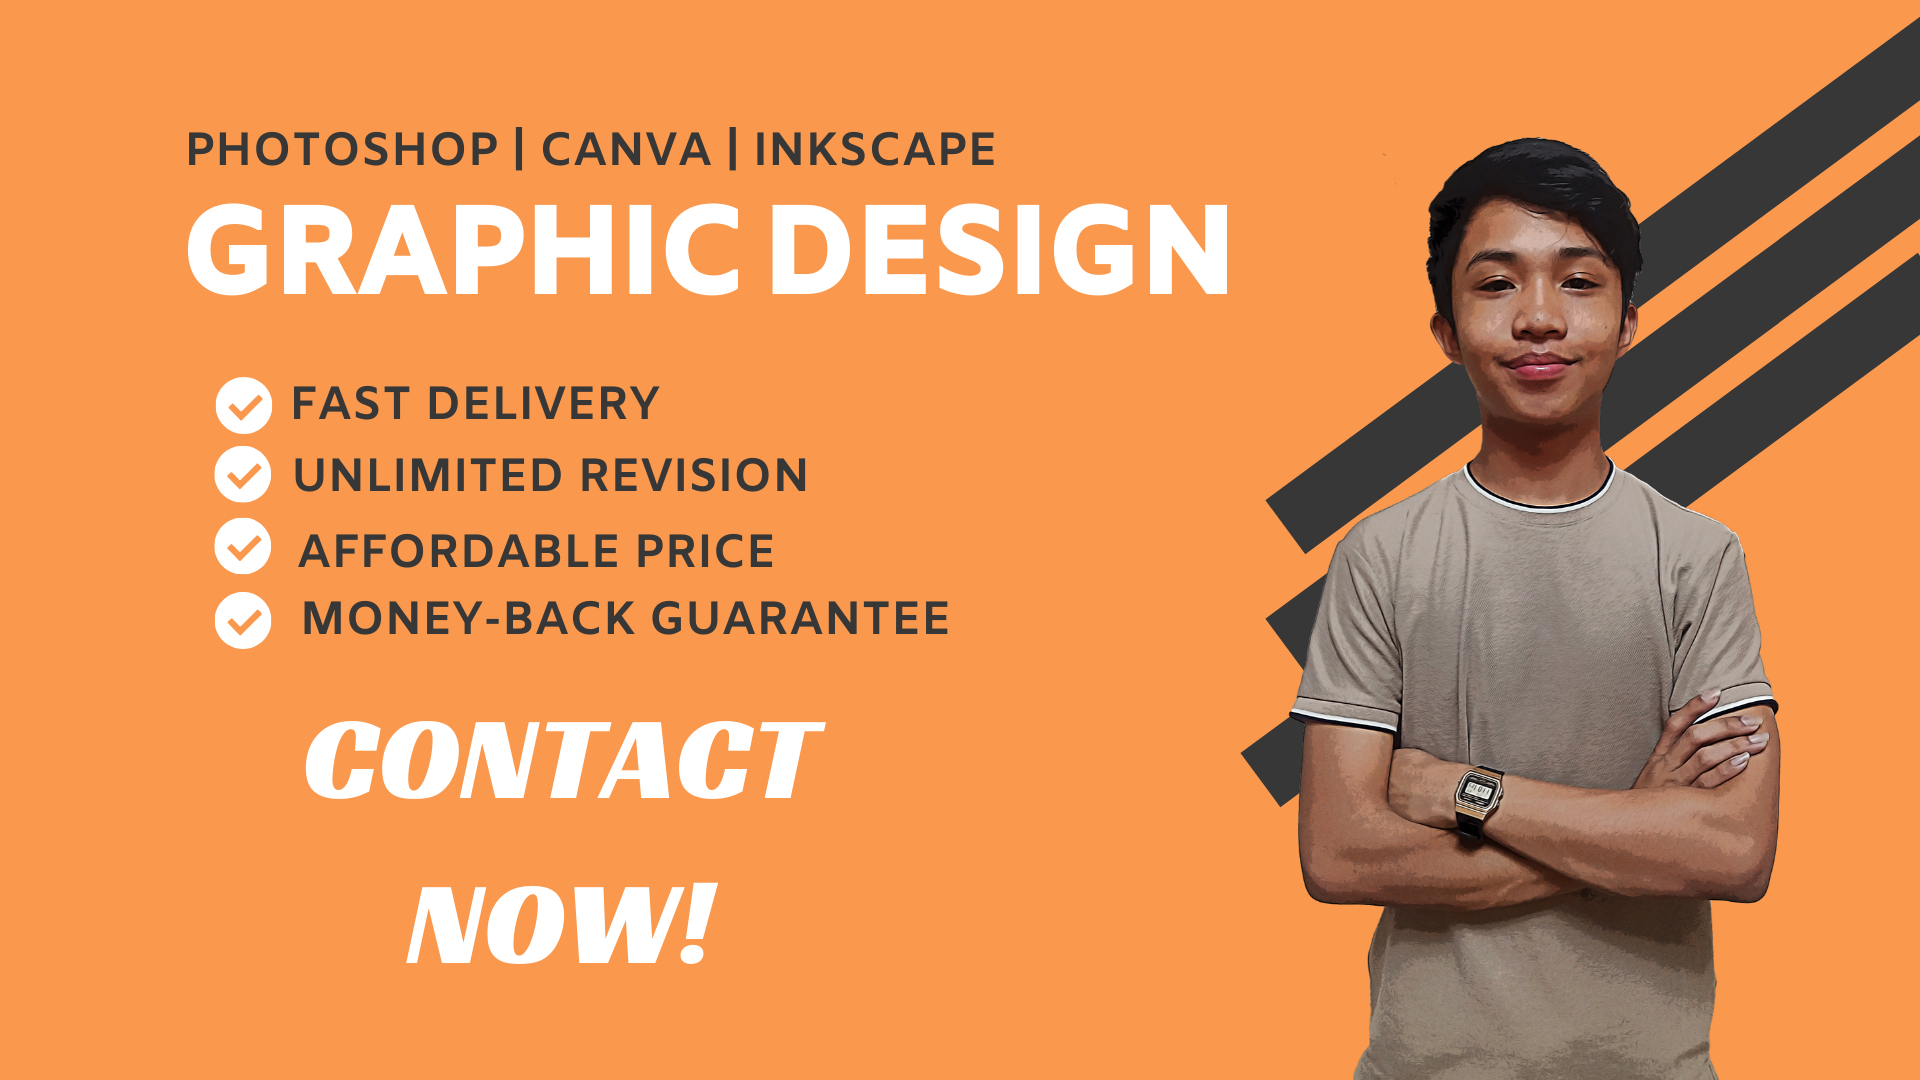 I Will Do Any Graphic Design Work in 24 Hours